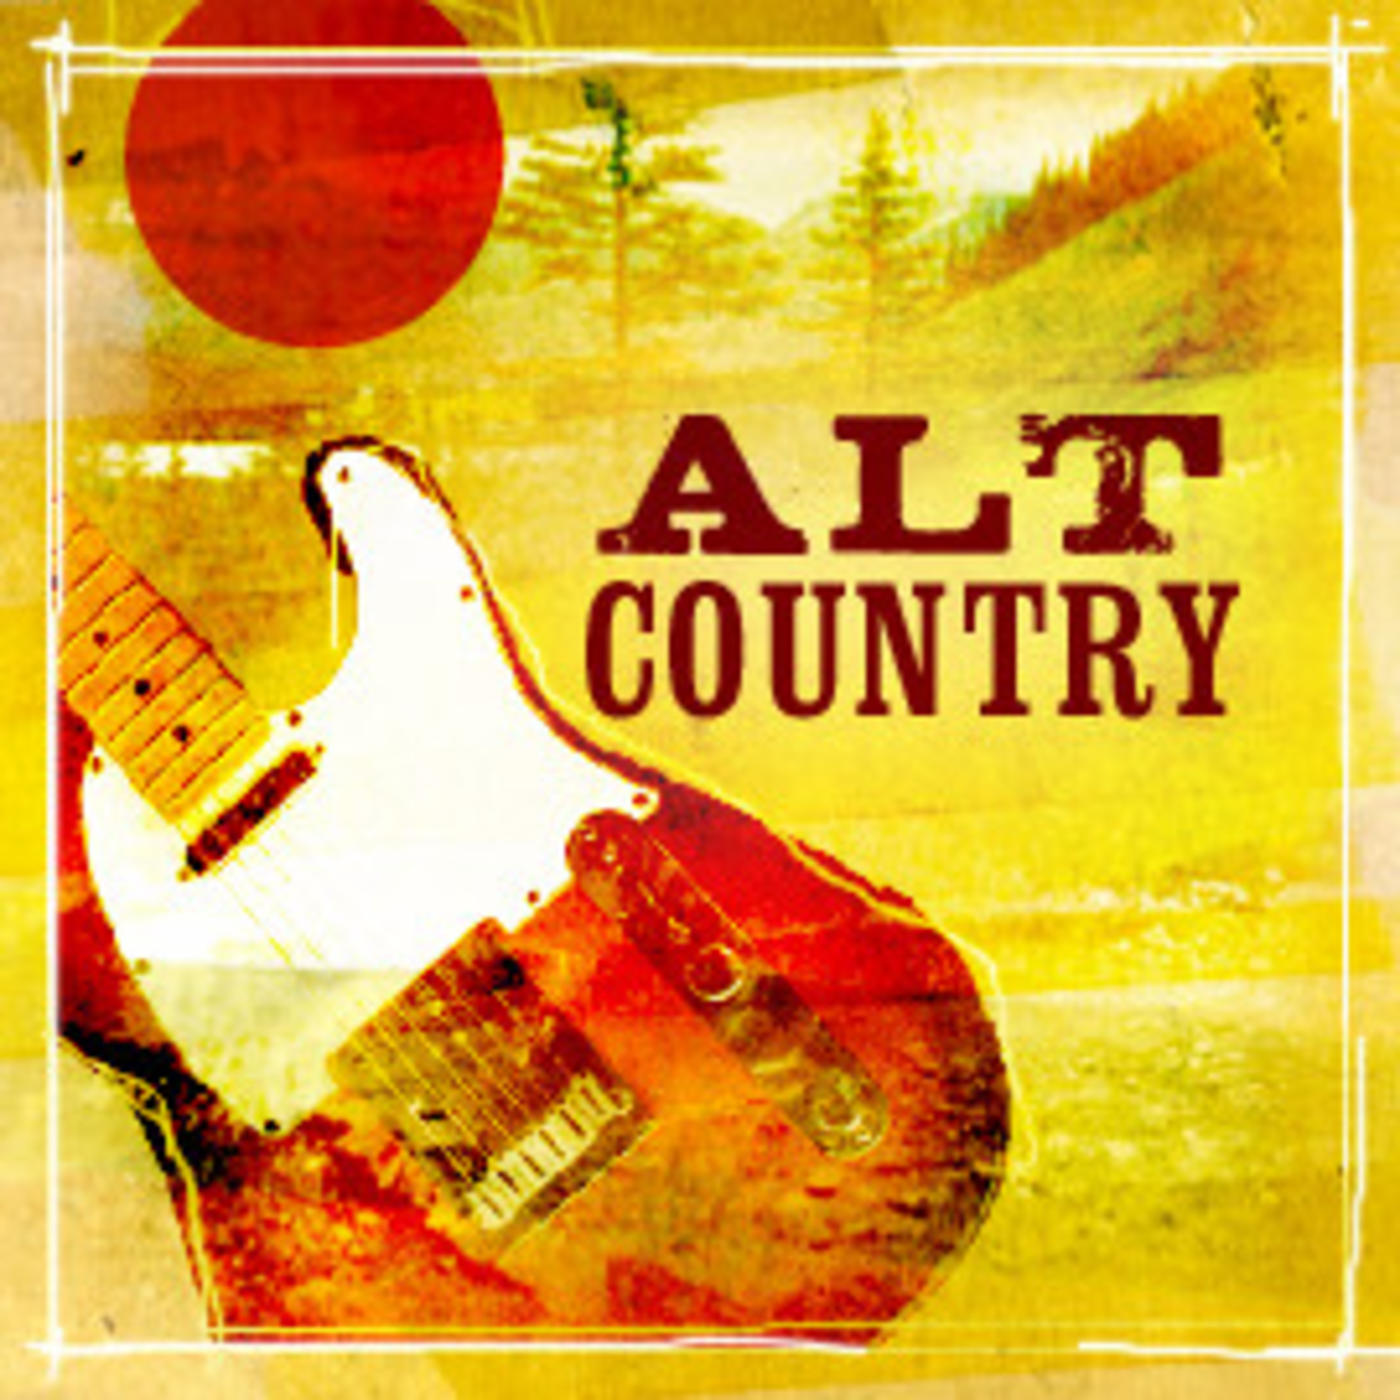 Alt Country - The Band, Old 97's, Son Volt, Emmylou